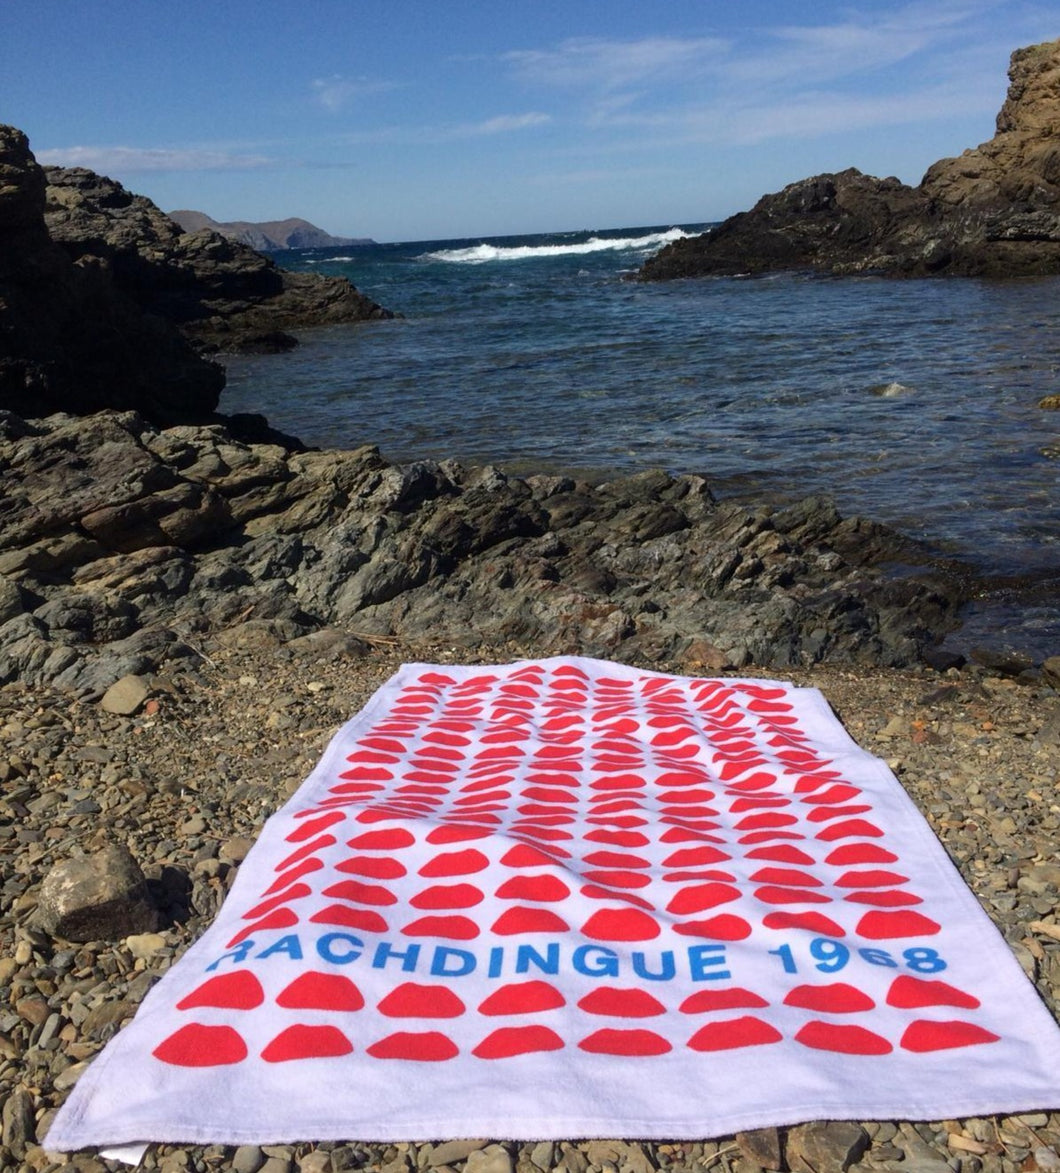 Beach Towel Rachdingue 180x90cm ! Free Shipping !